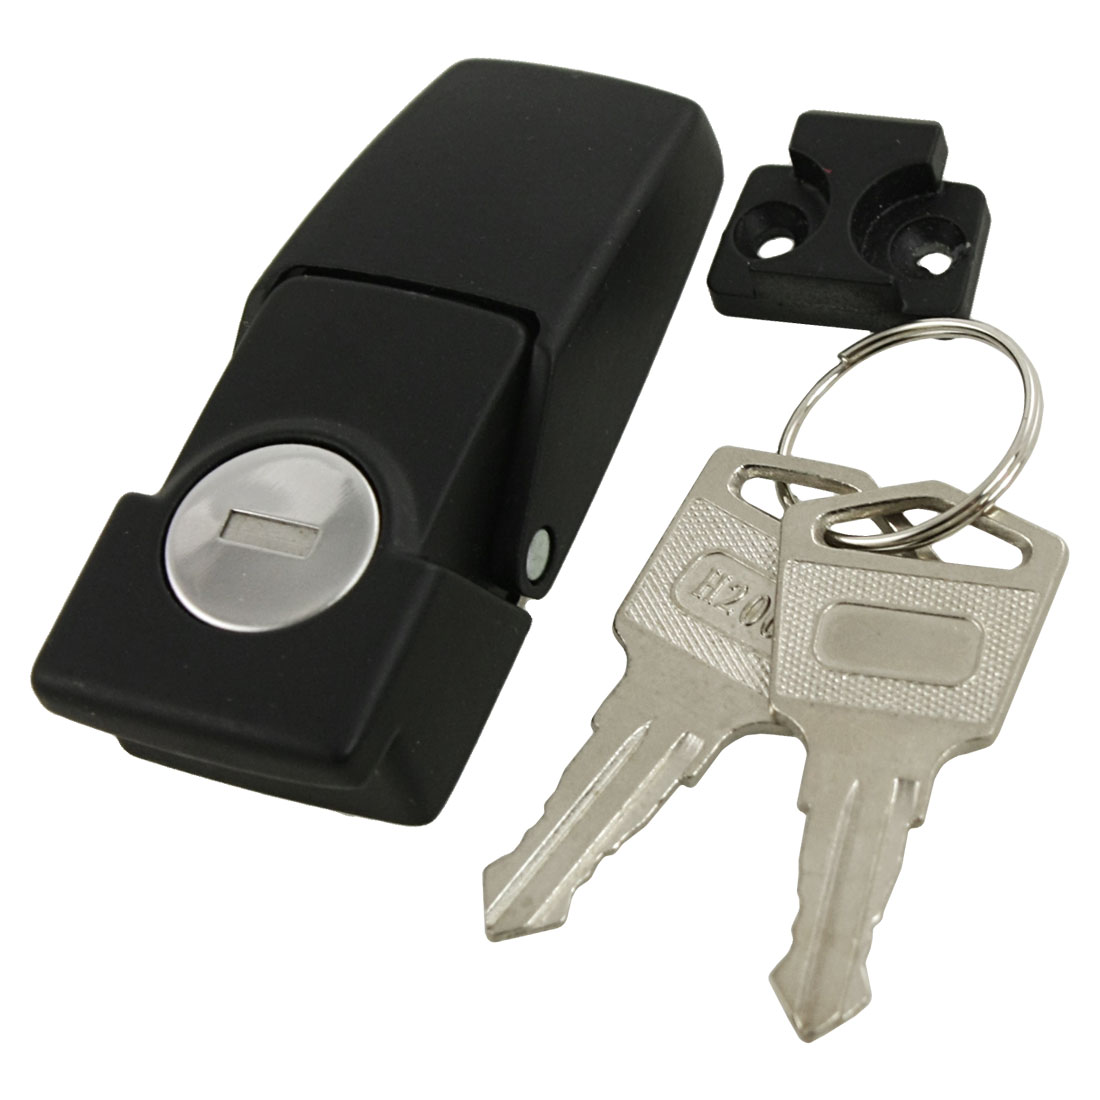 Cabinets Security Toggle Hasp Latch Lock DSK w Two Keys